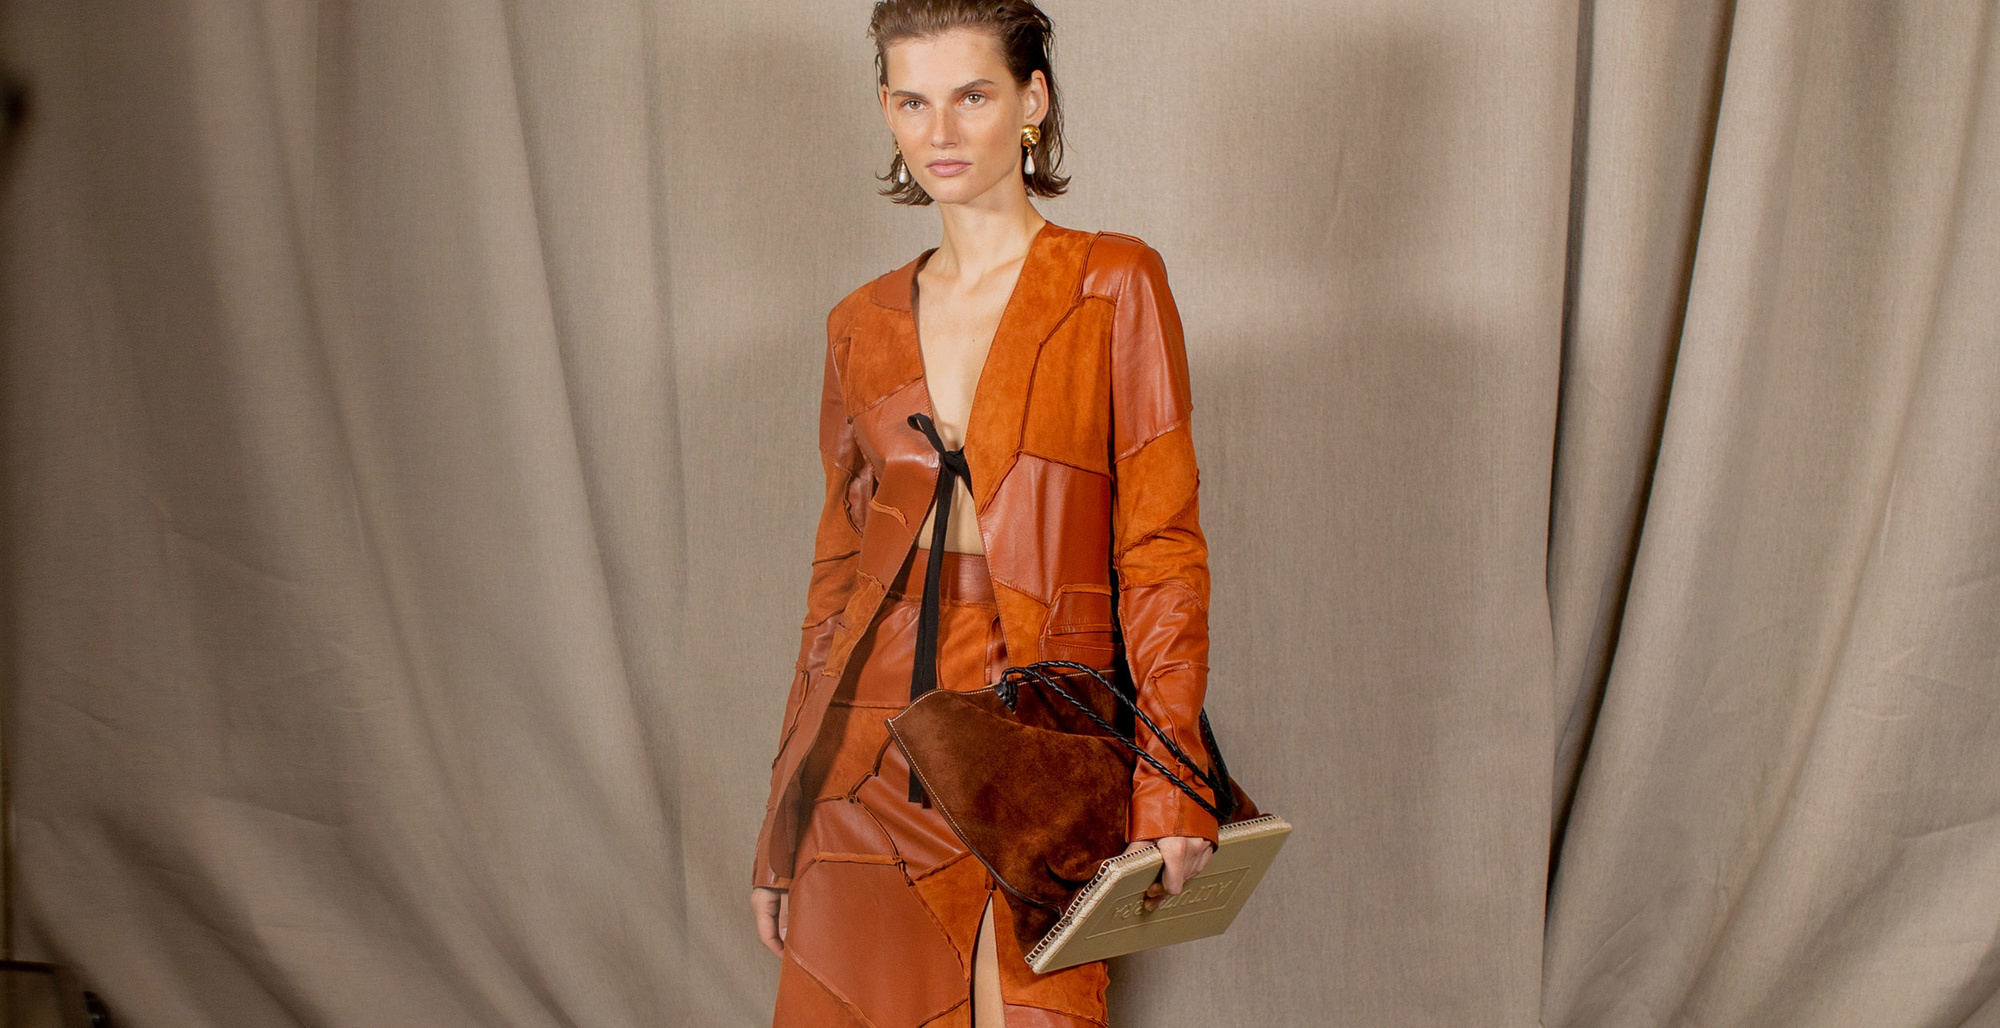 The Altuzarra Woman - model in leather dress holding espadrille bag